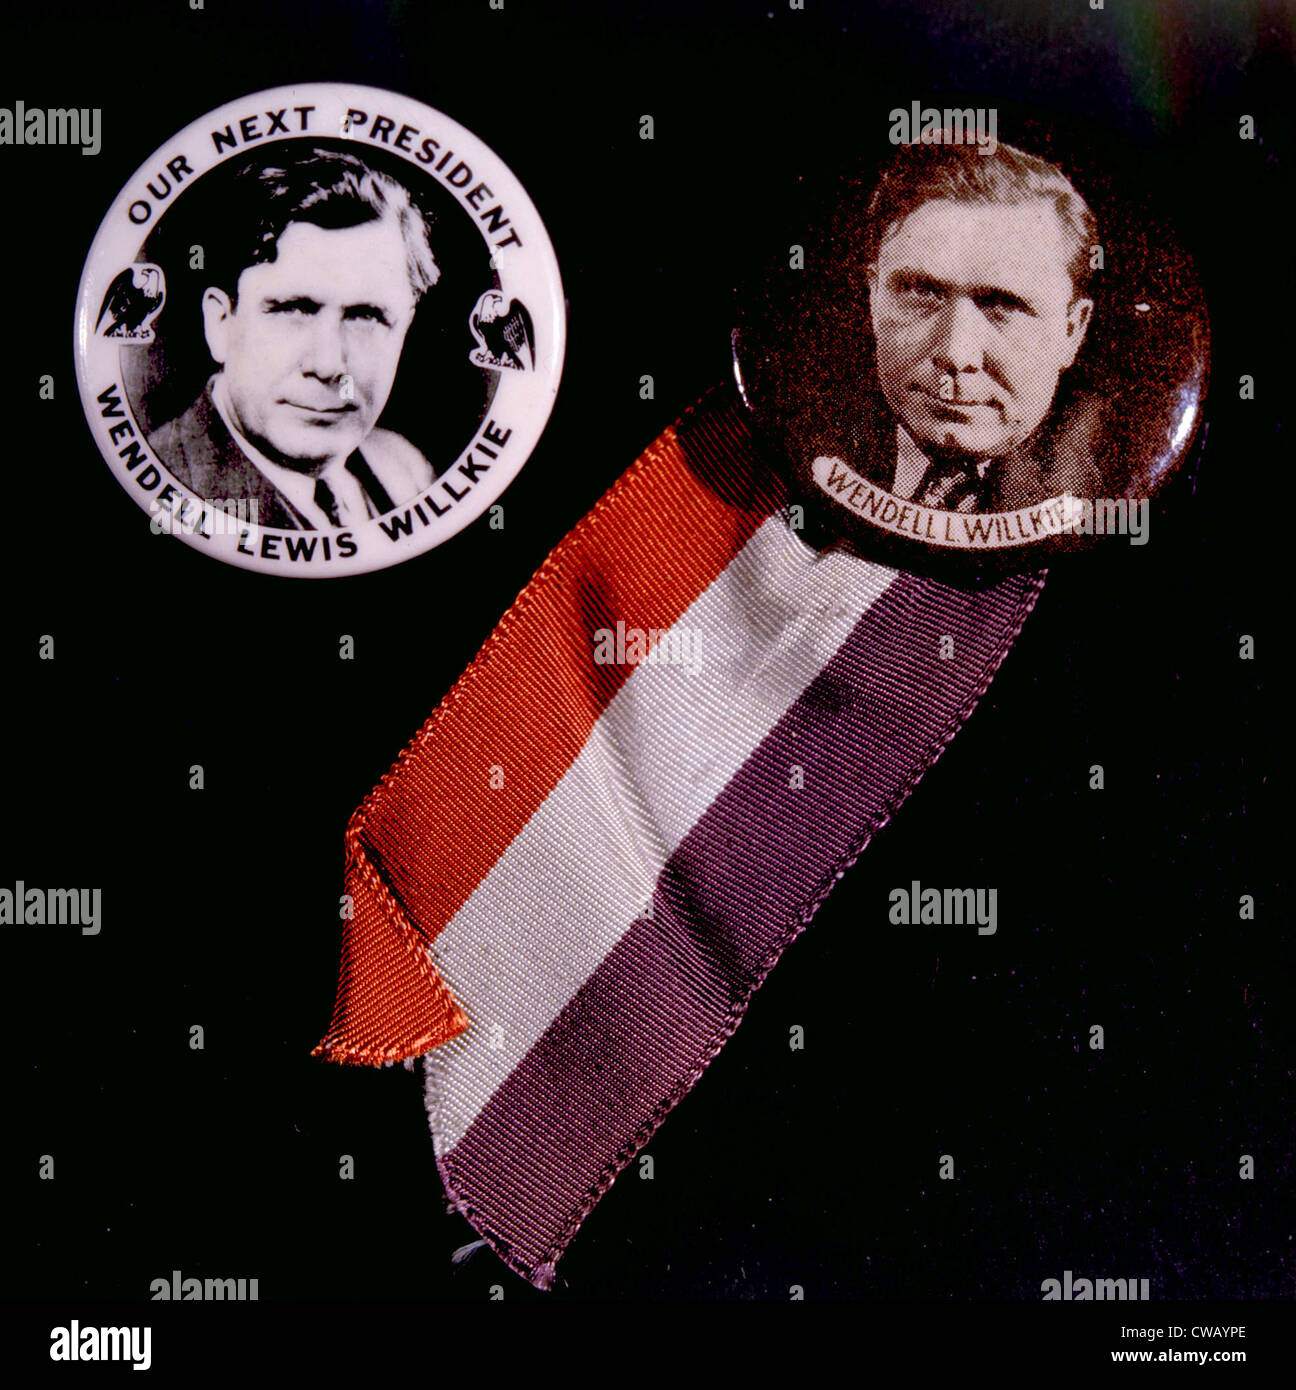 Campaign buttons for the presidential campaign of Republican nominee Wendell Willkie, 1940 - Stock Image